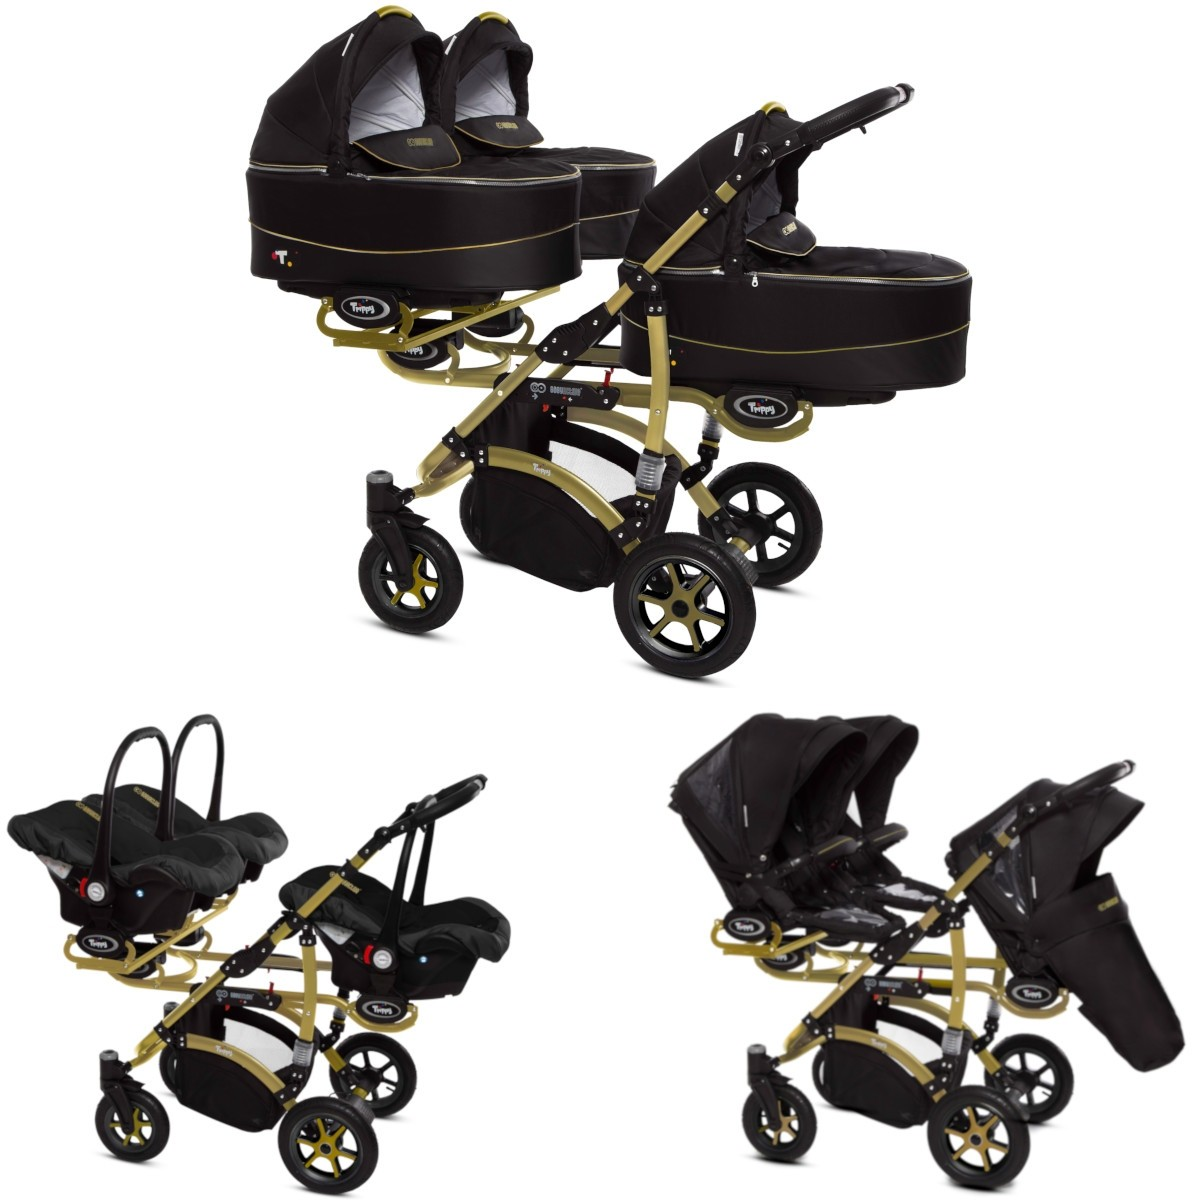 Trippy Drillings-Kombi-Kinderwagen gold 2in1 Set mit 3 Babywannen + 3 Sportaufsätzen oder 3in1 + 3 Babyschalen / Autoschalen